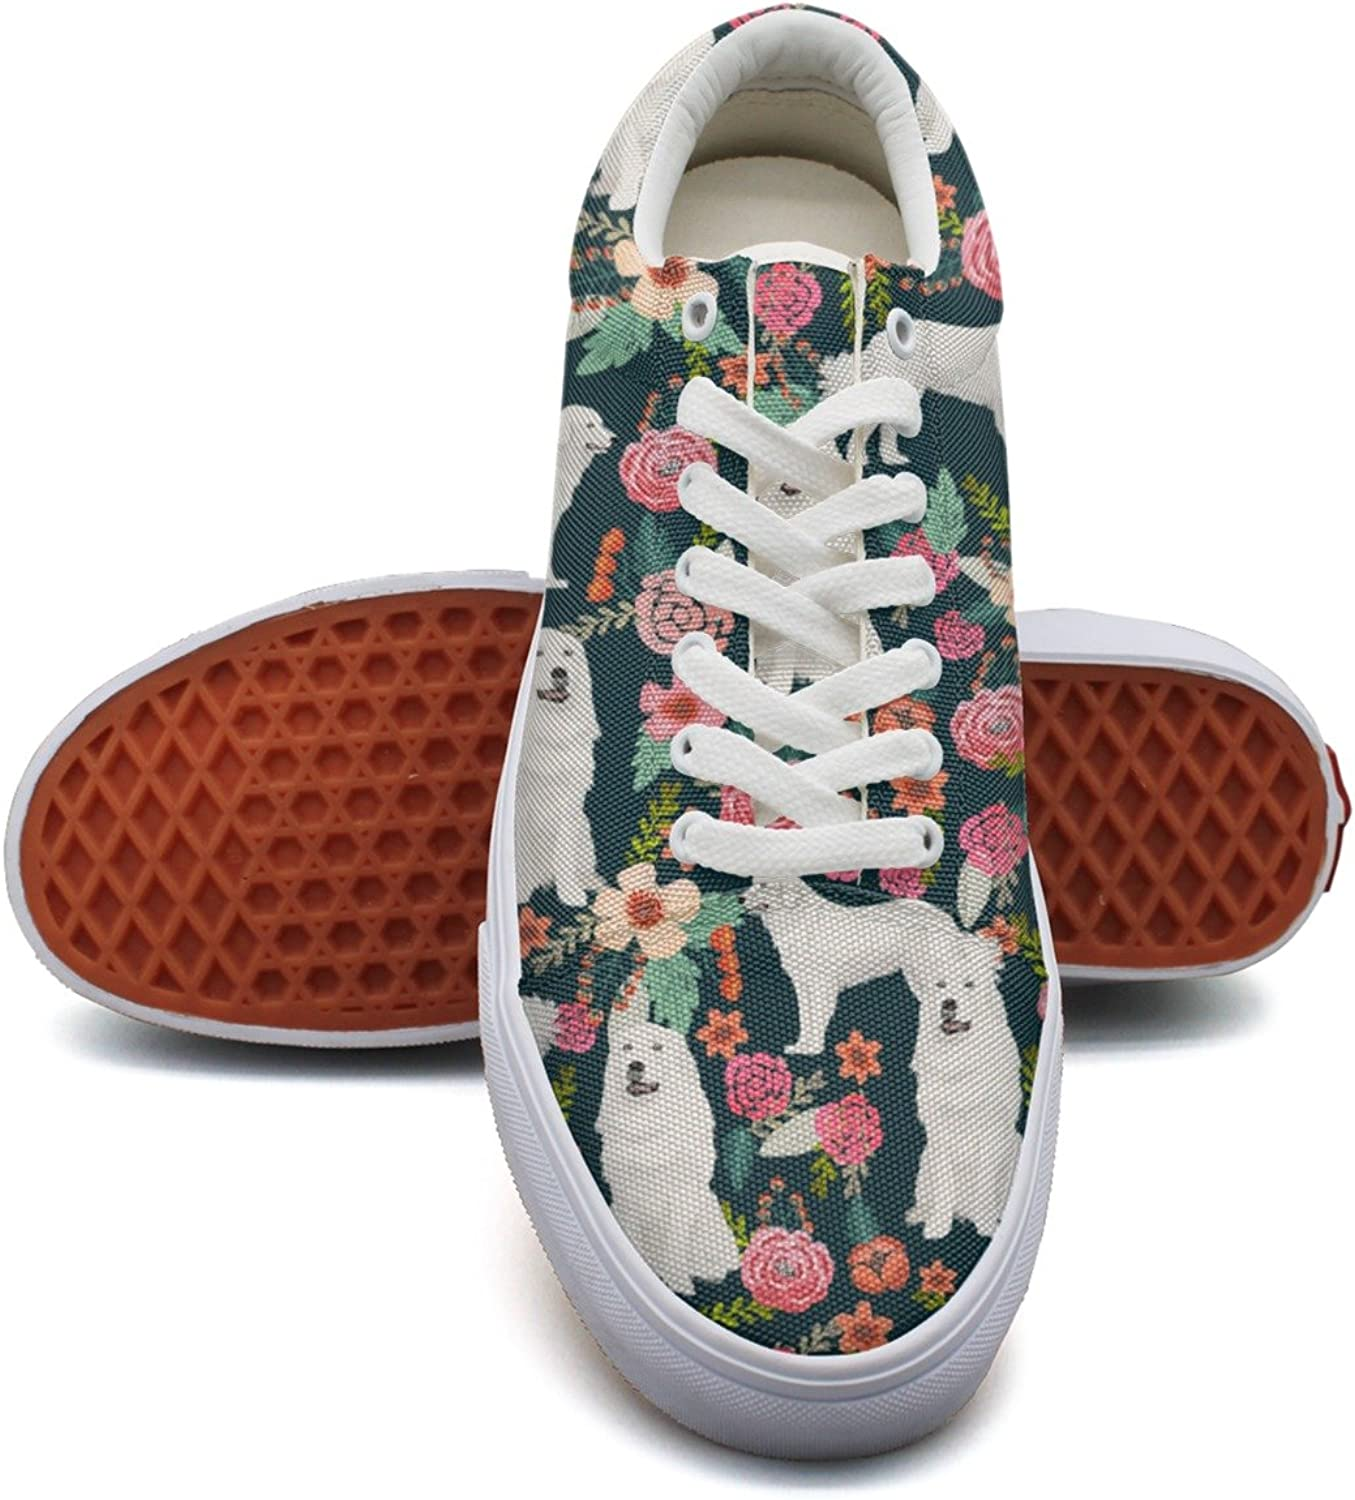 Cute Vintage Florals Fluffy White Dog Womens Plain Canvas Tennis shoes Low Top Lightweight Basketball shoes for Women Girls